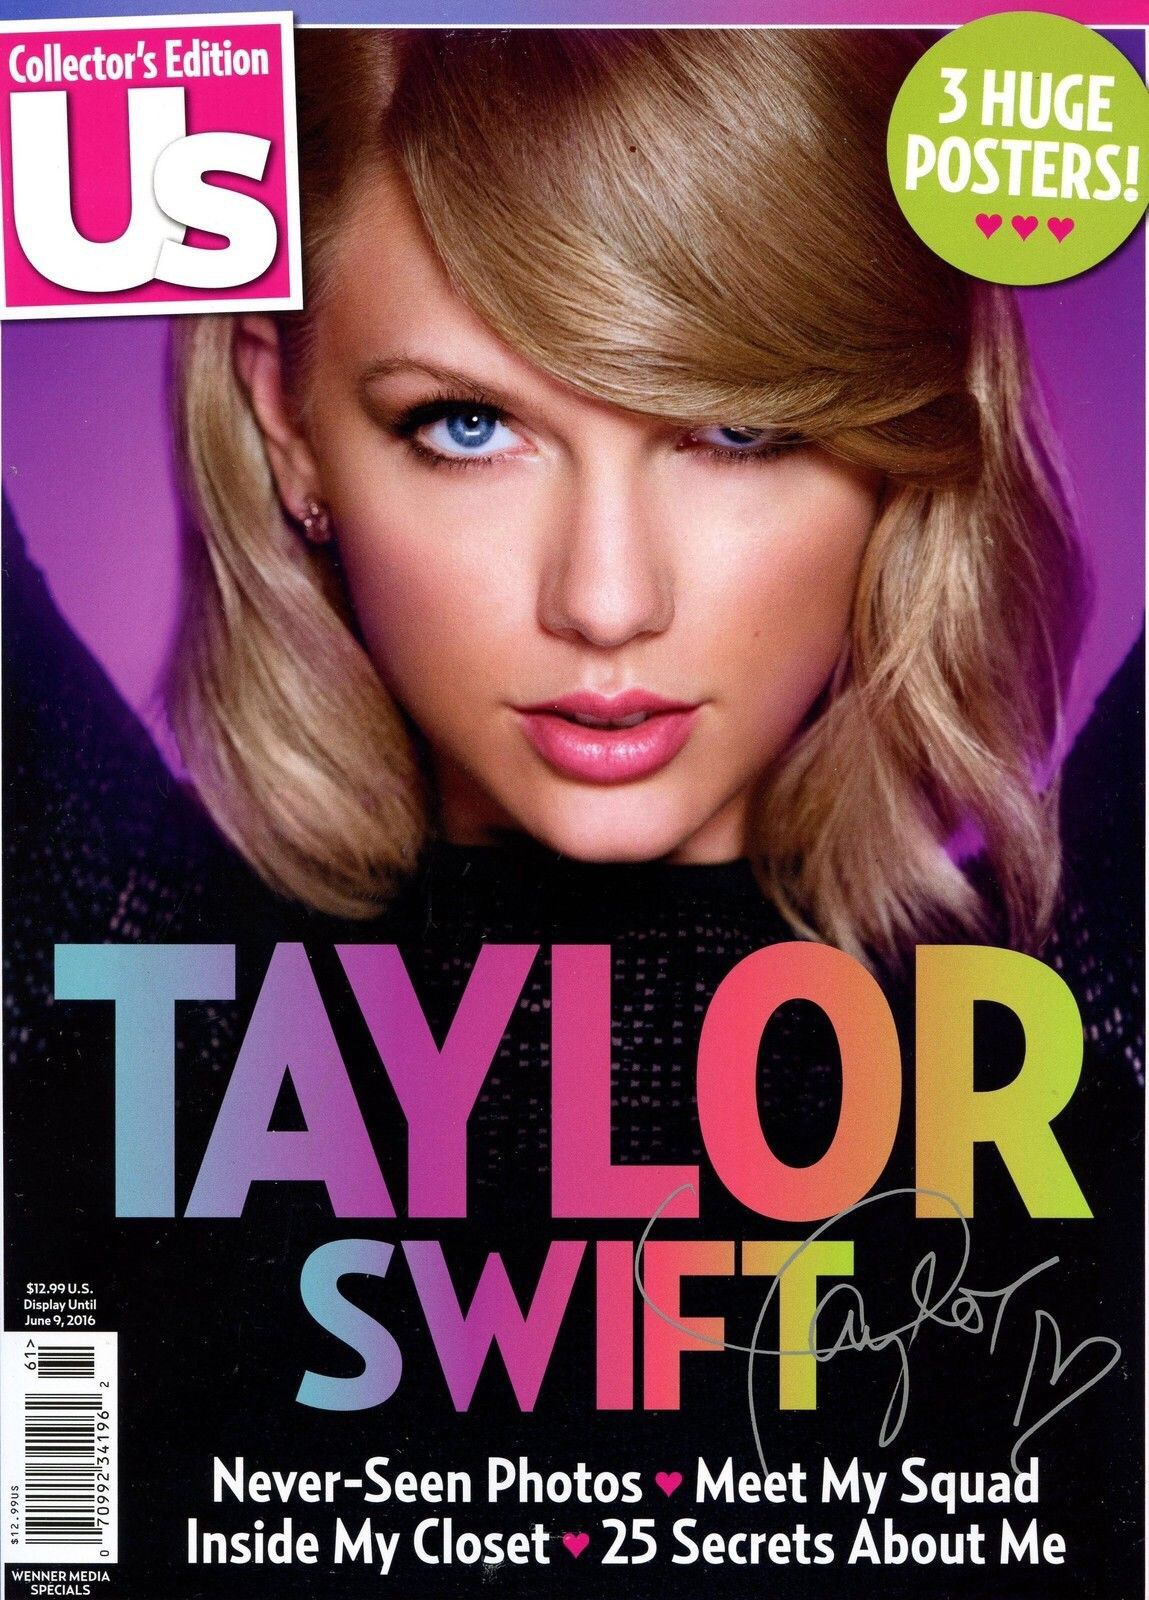 Taylor swift photographed for us magazine collectors edition taylor swift photographed for us magazine collectors edition m4hsunfo